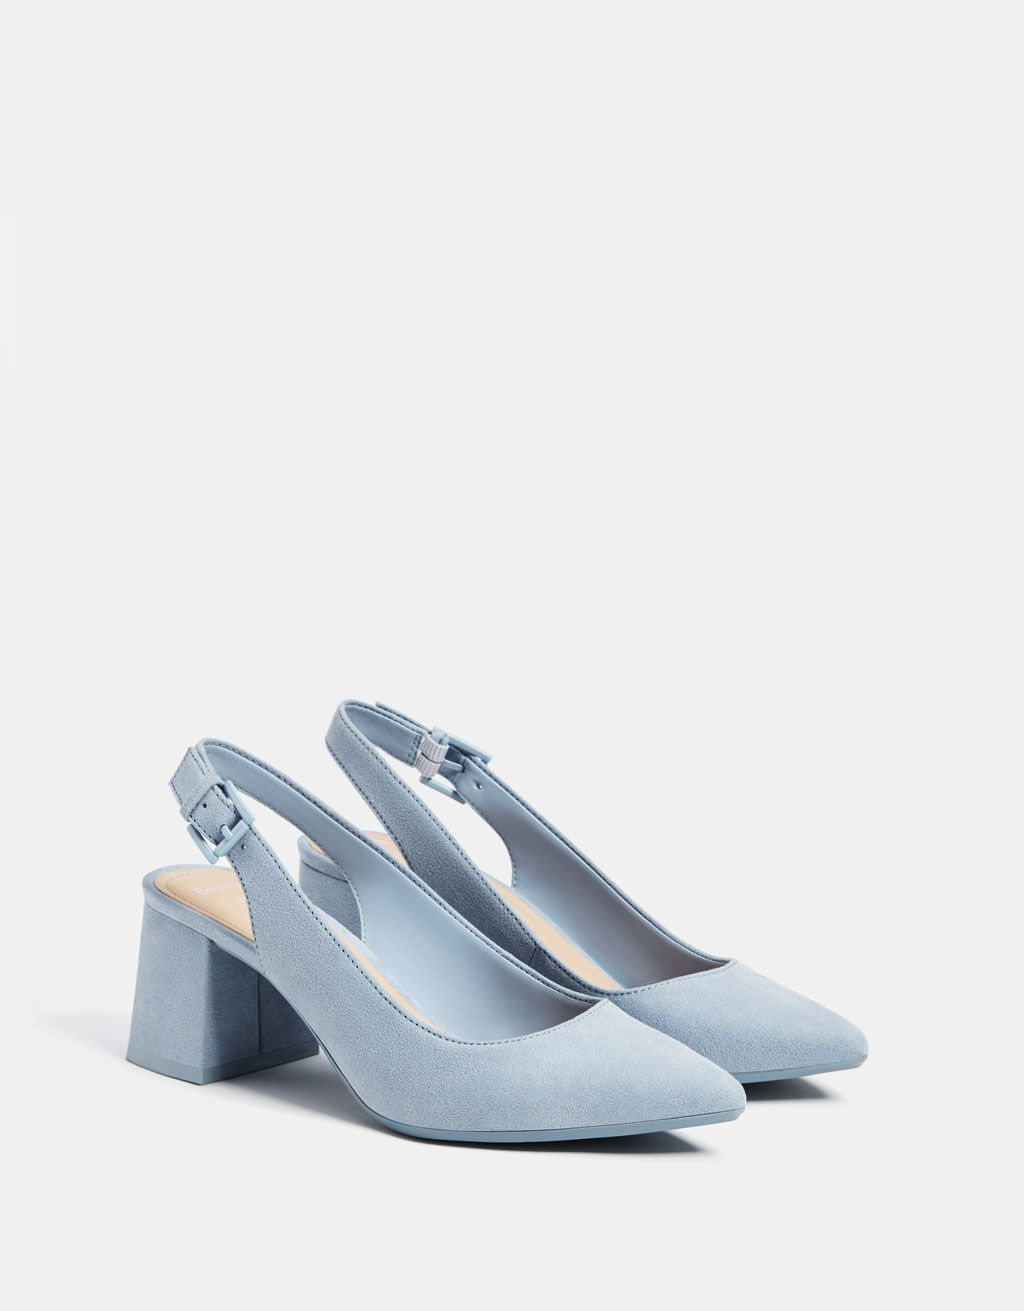 Blue Slingback Mid Heel Shoes In 2020 Heels Mid Heel Shoes